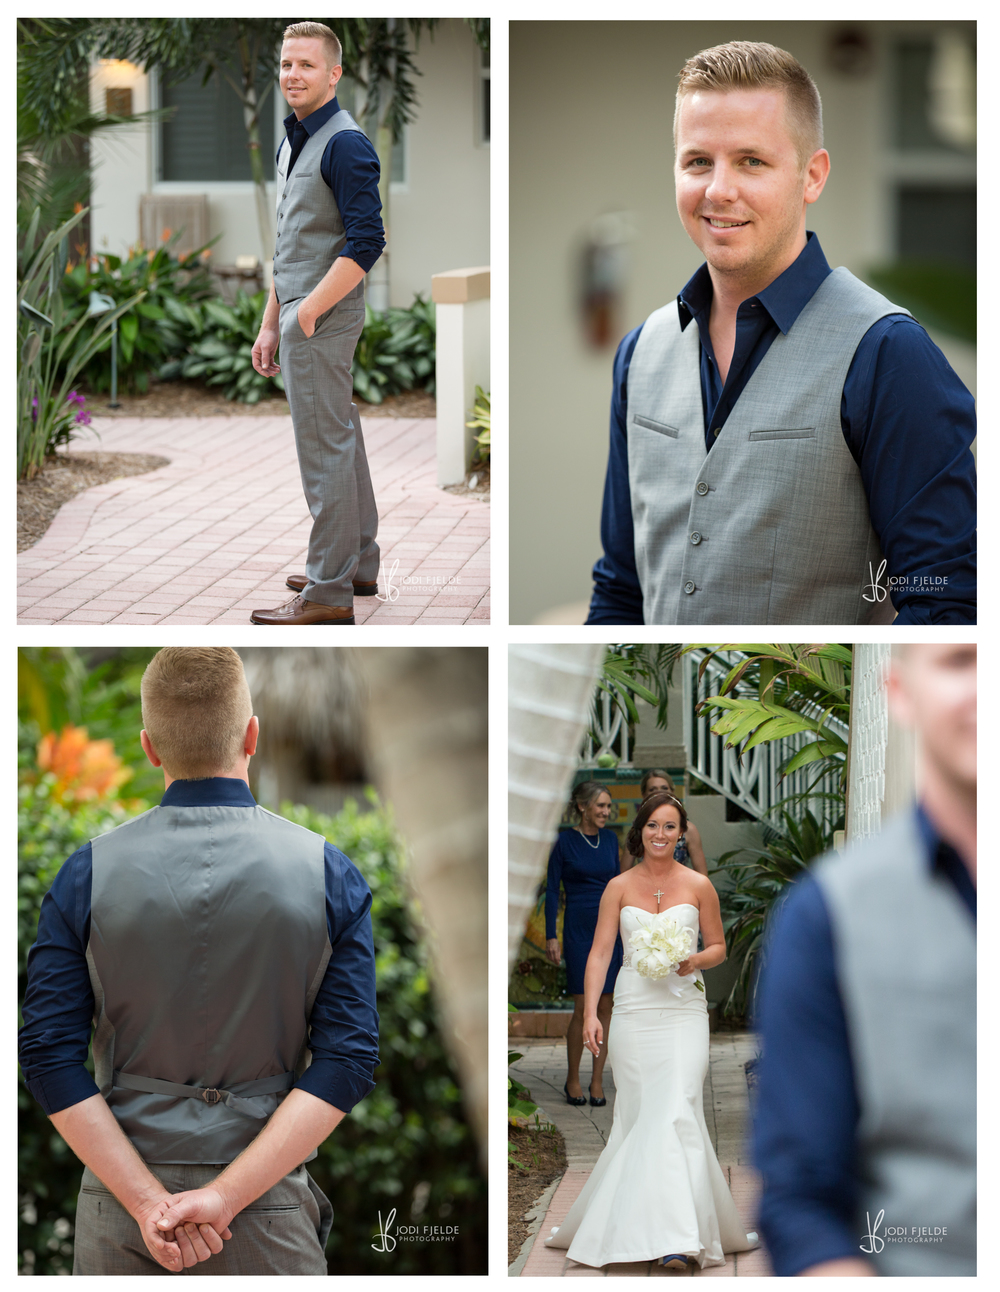 Cranes_Beach_House_Delray_Beach_wedding_carolyn_Dylan_married7.jpg